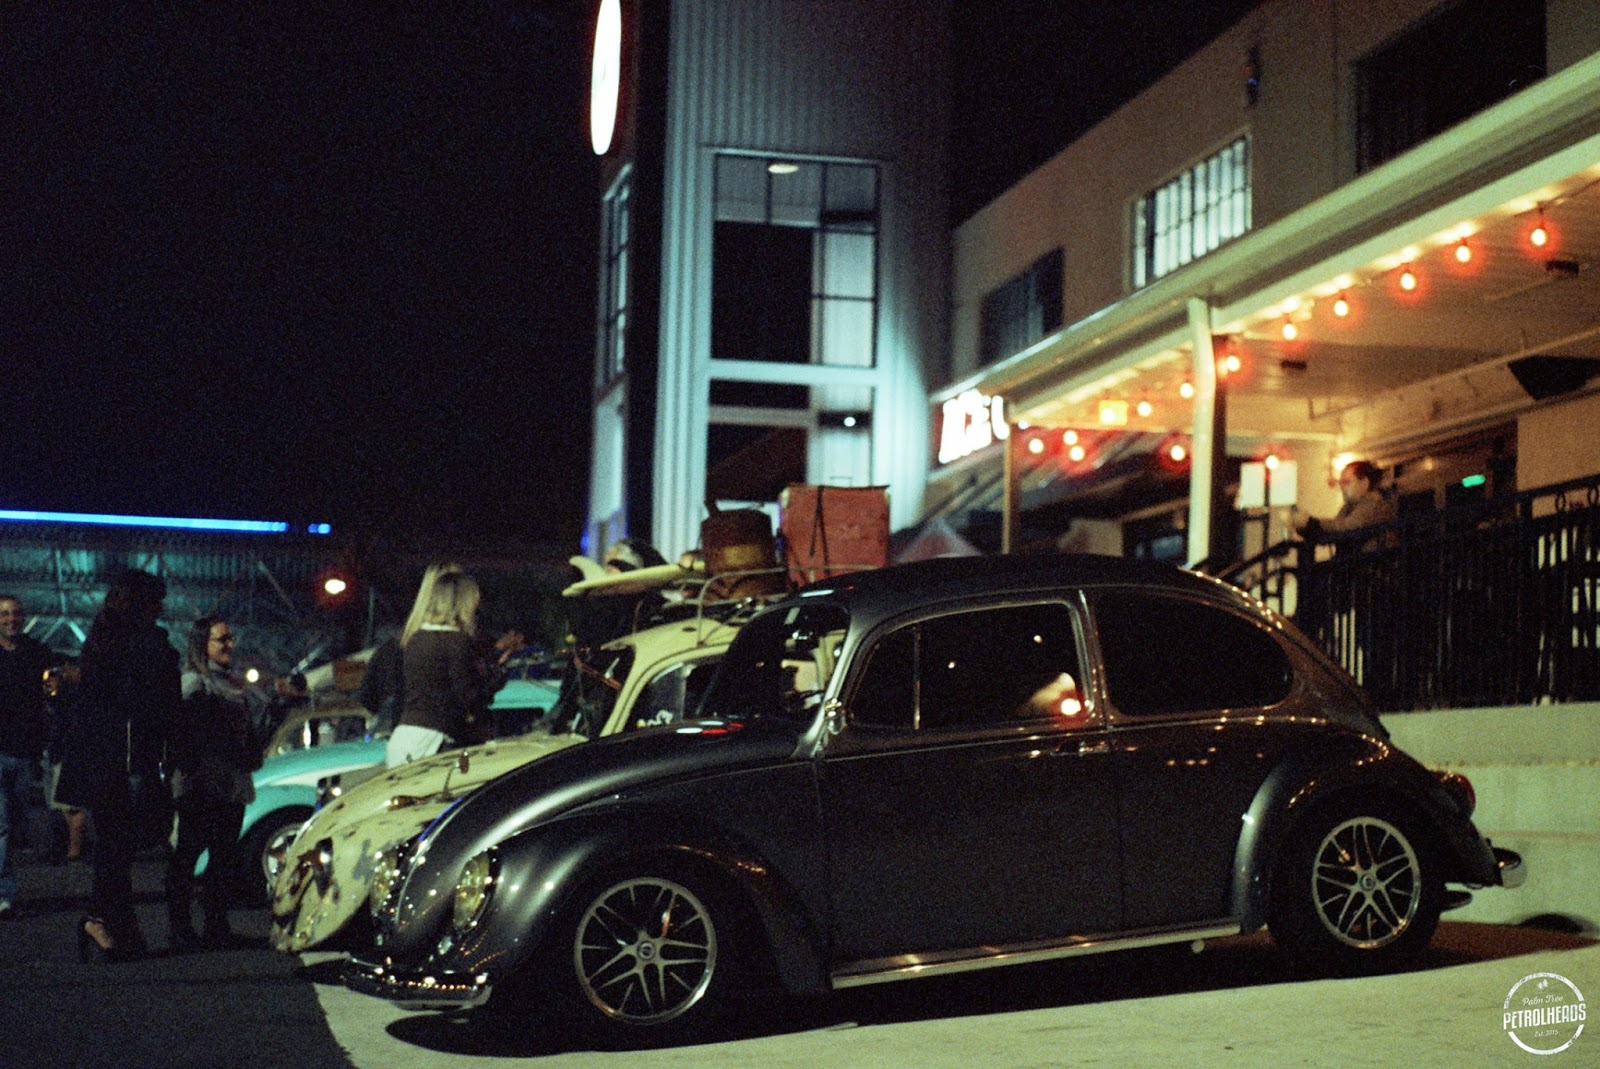 Palm Tree Petrolheads: ACE CAFE VW MEET ON 35MM CINESTILL 800